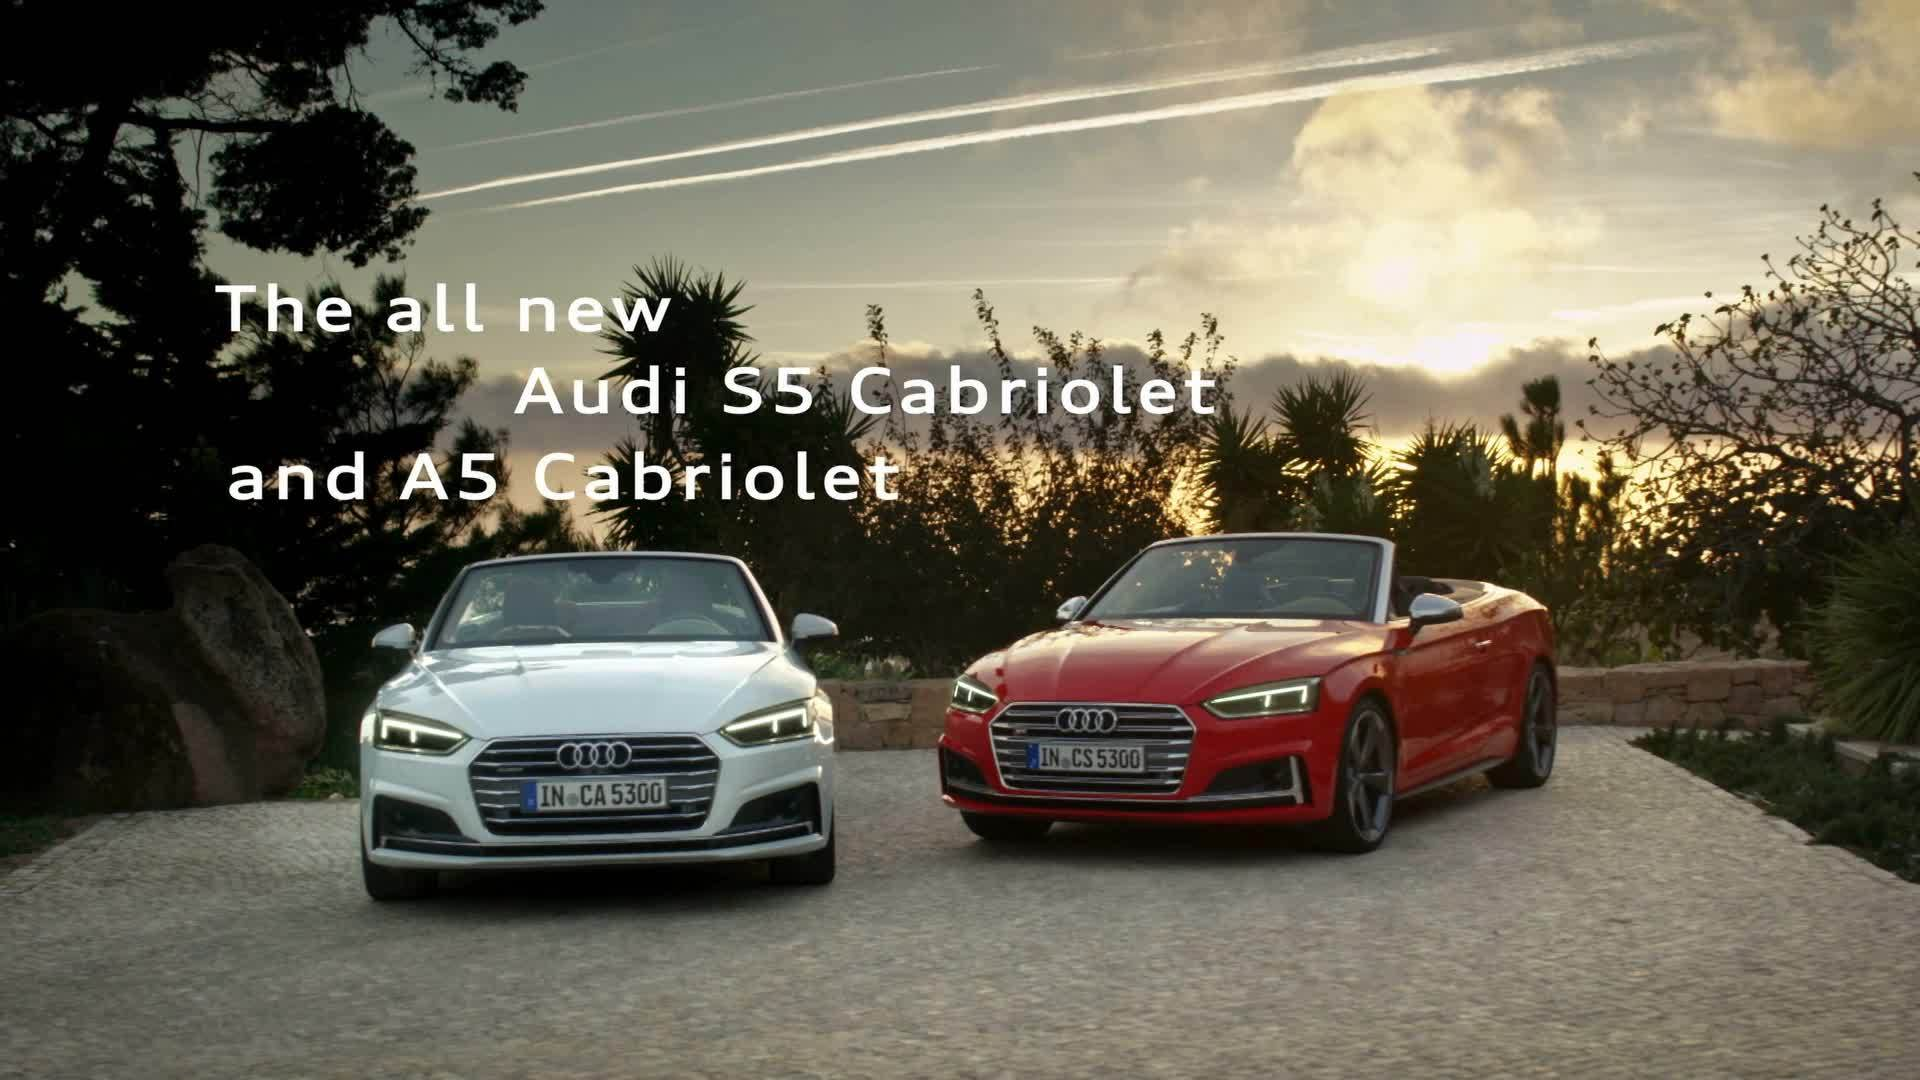 Sporty, elegant and comfortable - The all new Audi A5 and S5 Cabriolet